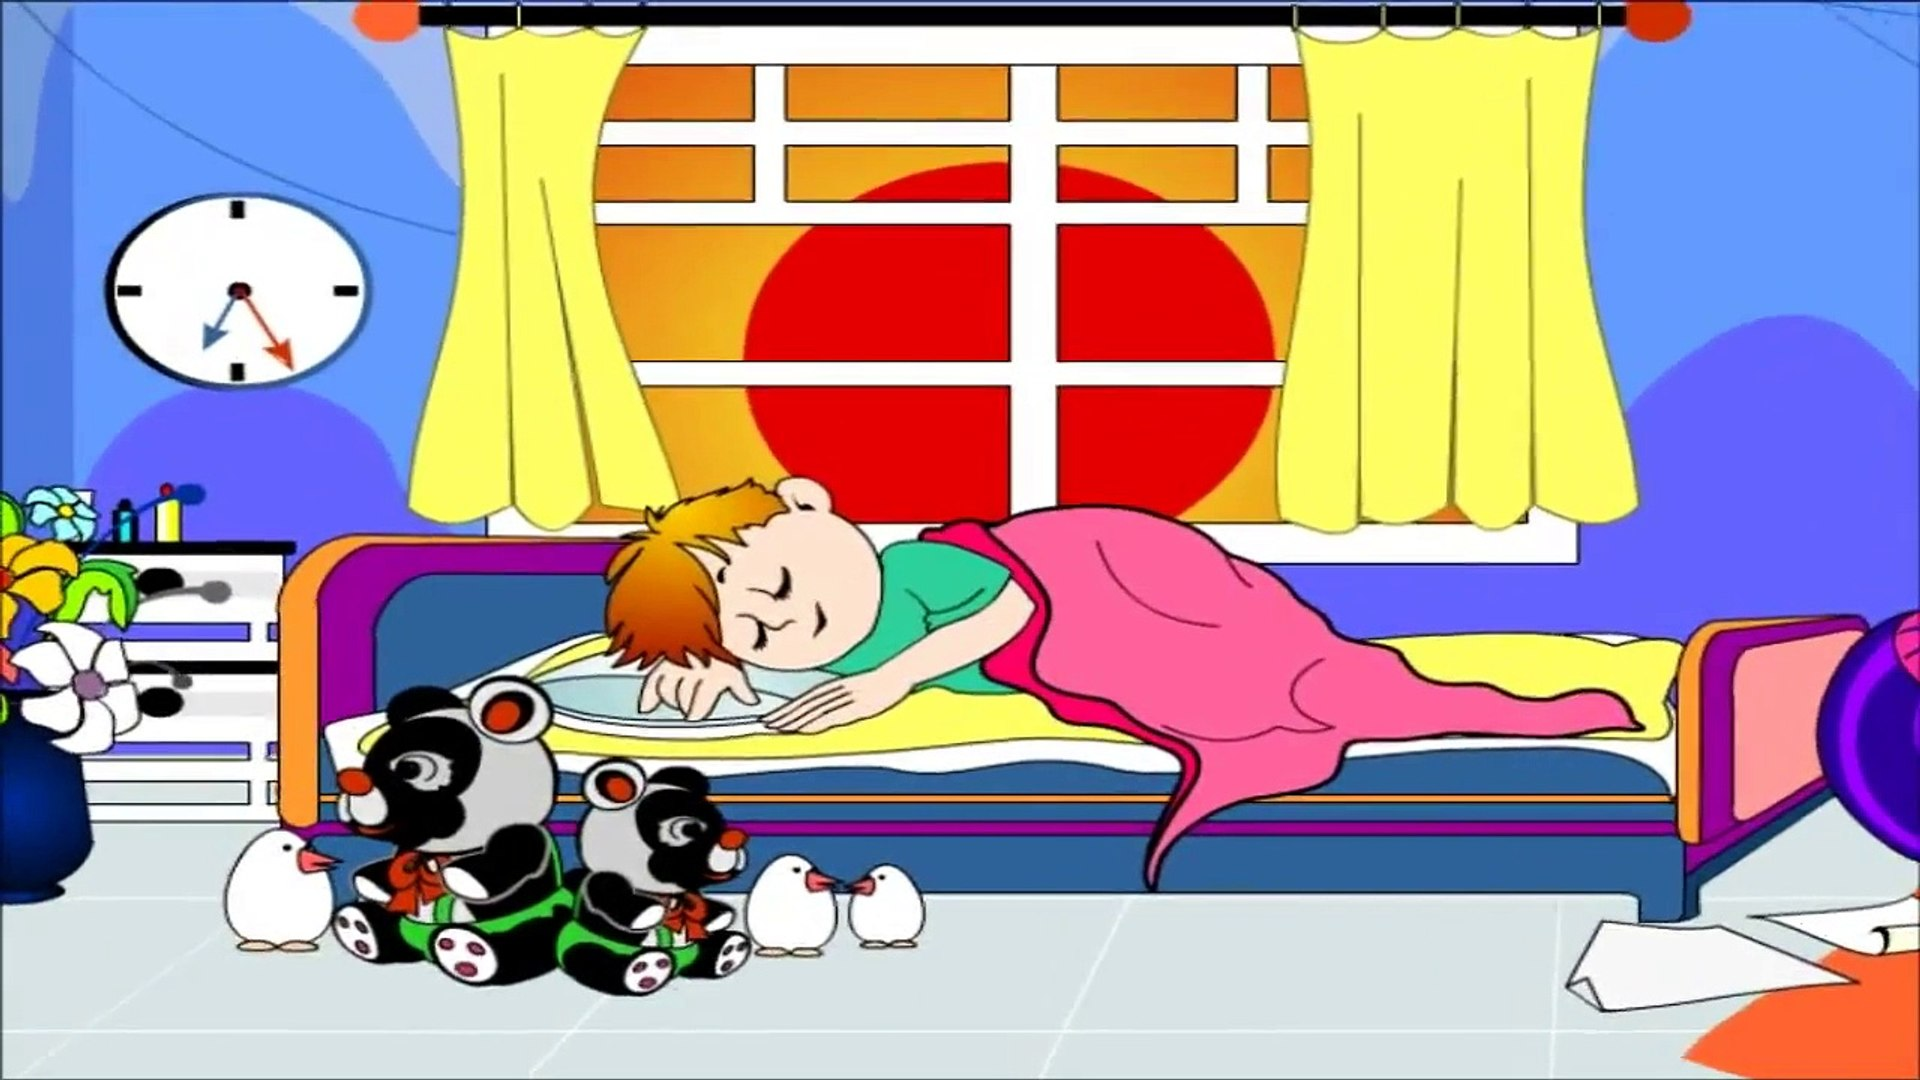 Are You Sleeping ## Melodious English Rhyme - Nursery Kids Education